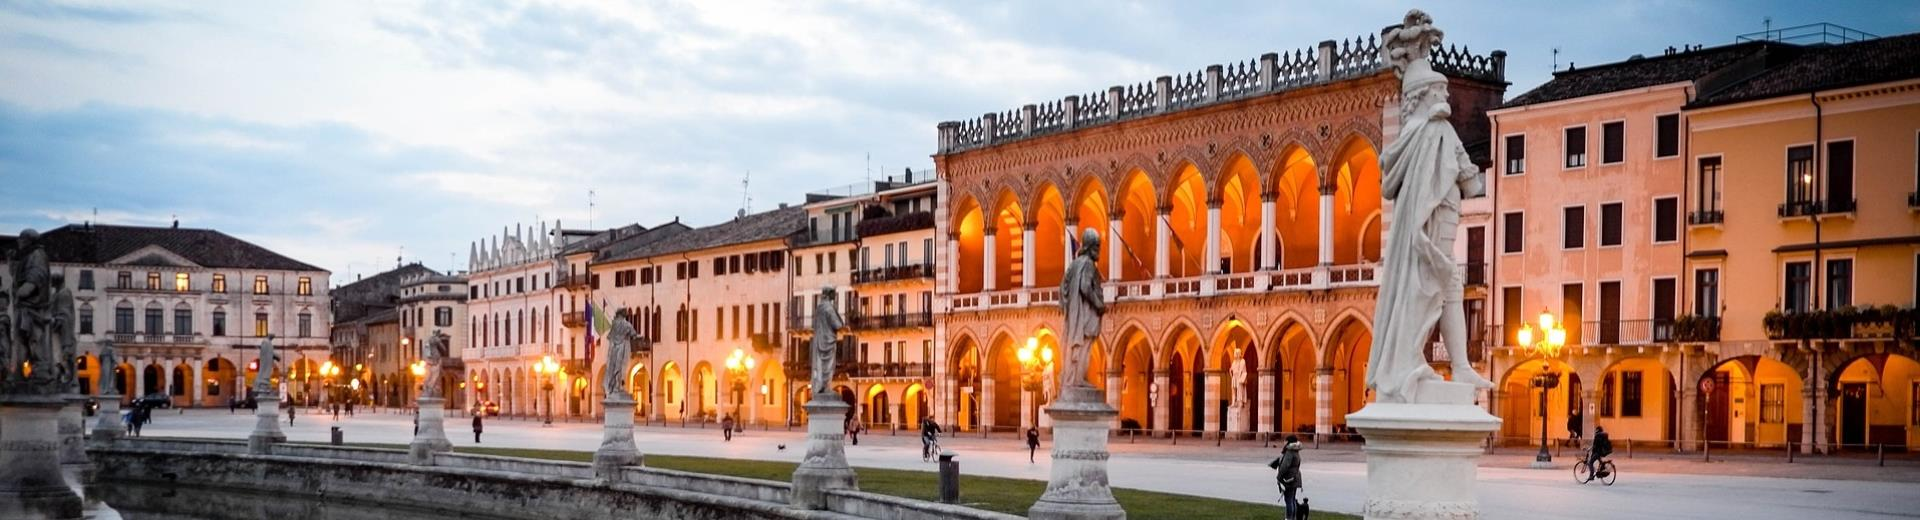 Visit Padova and stay at the 4 star Plus Hotel Galileo